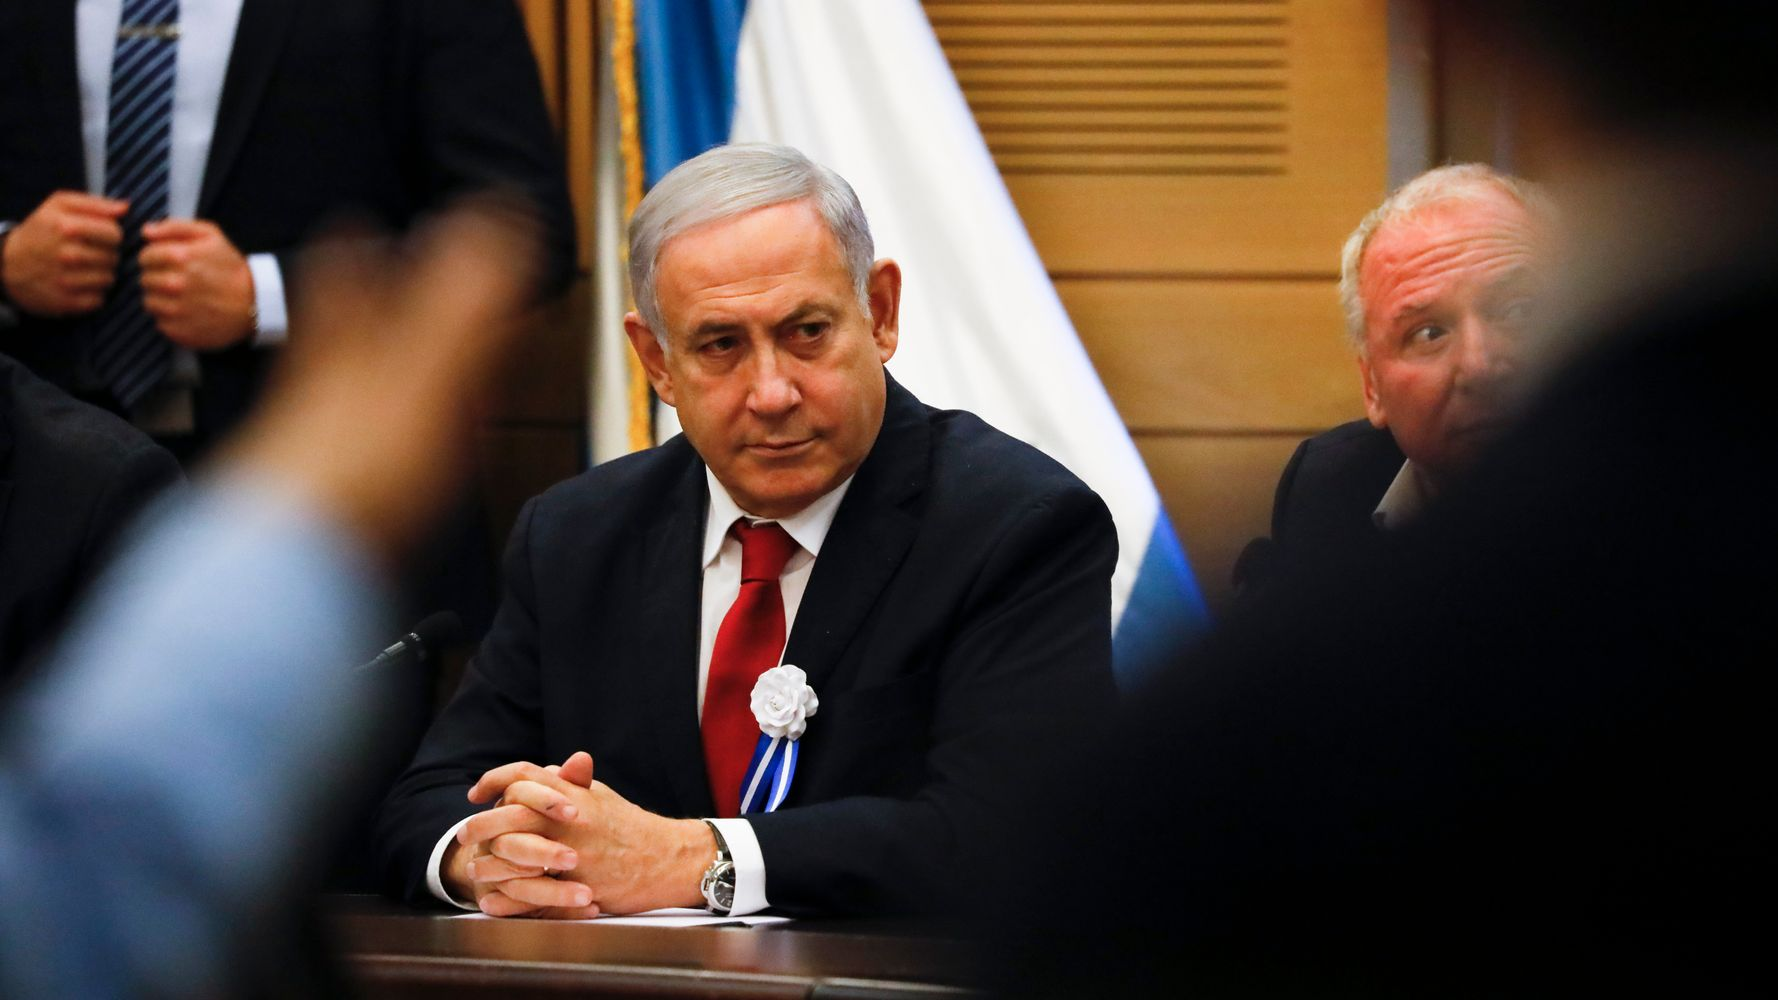 Westlake Legal Group 5dadeadf200000e91b50652d Benjamin Netanyahu Passes Up Mandate To Form A New Government